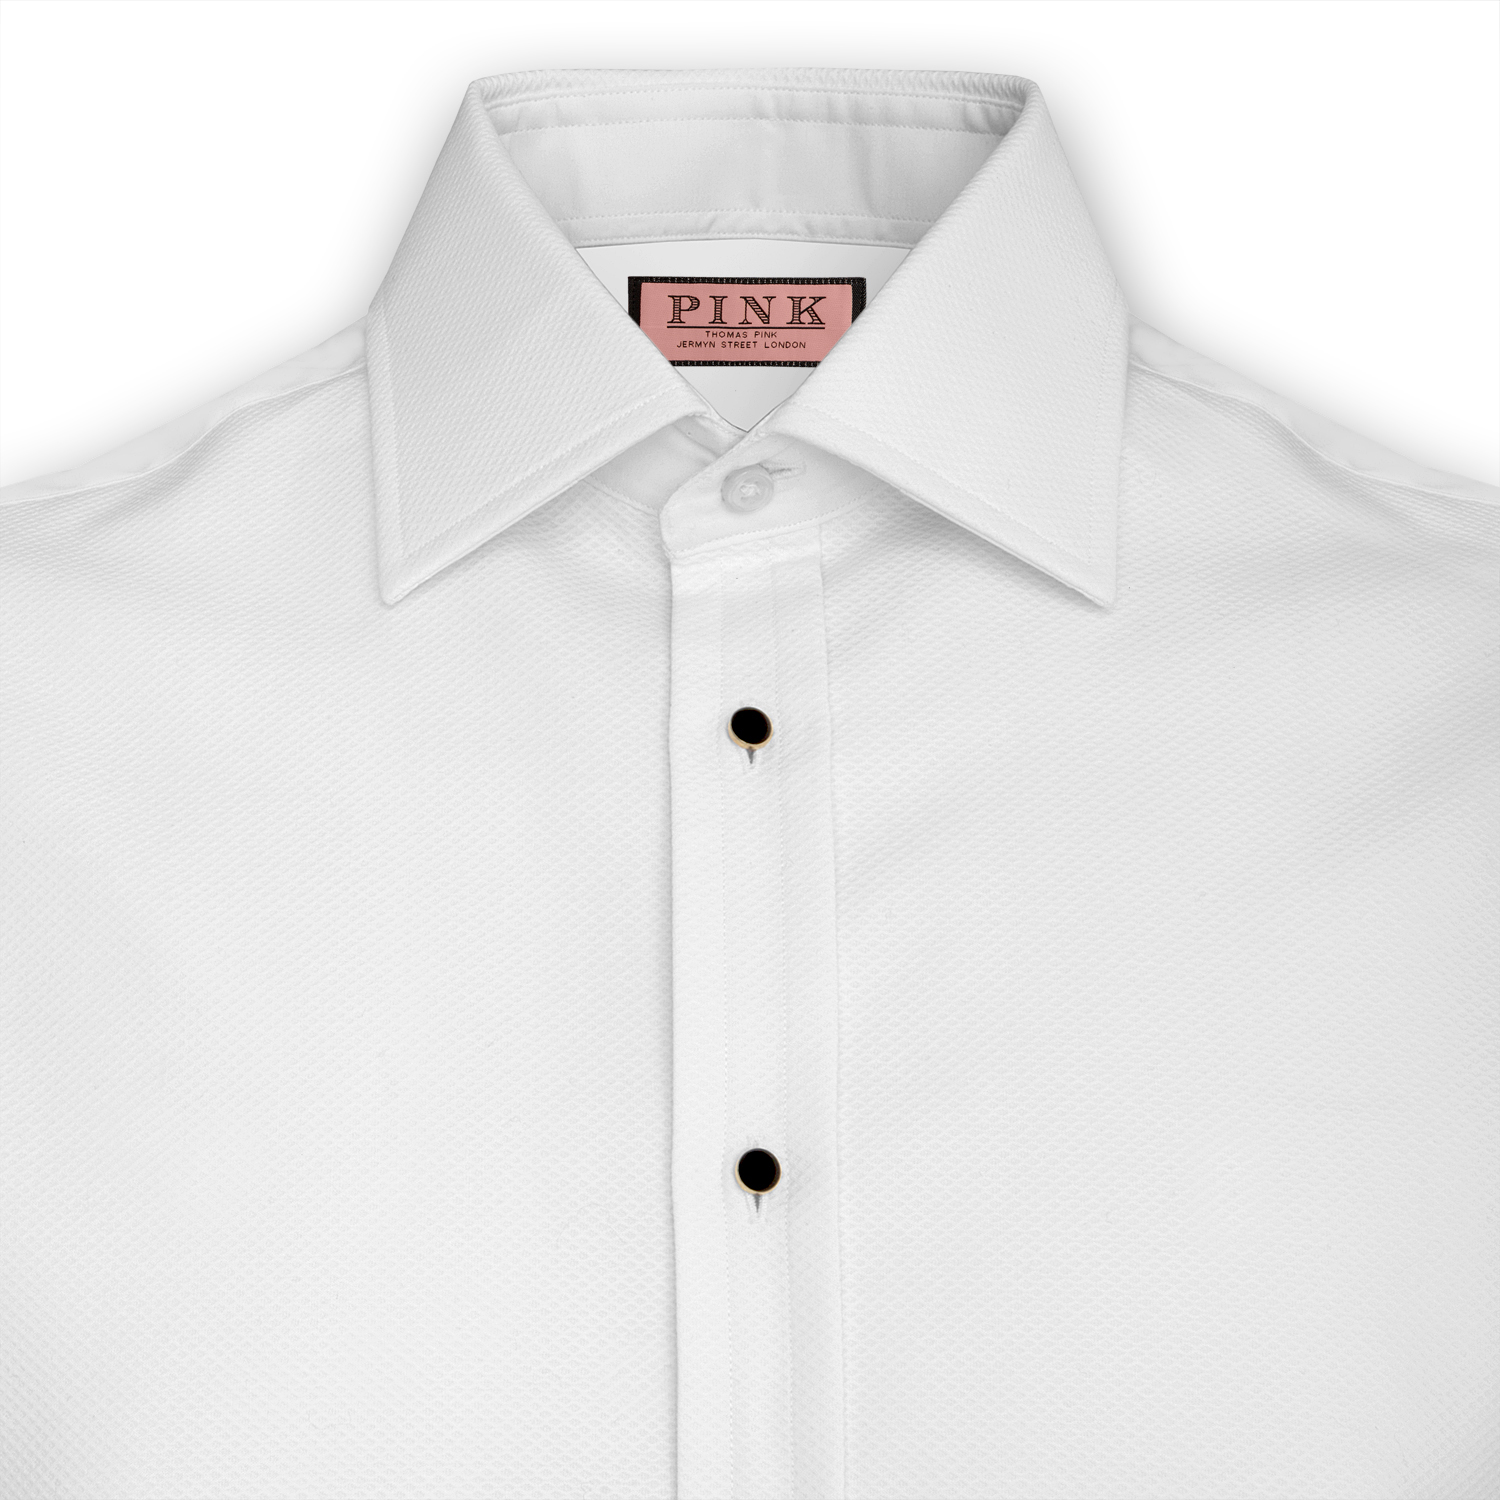 Spotlight the marcella shirt black tie blog for Tuxedo shirt covered placket